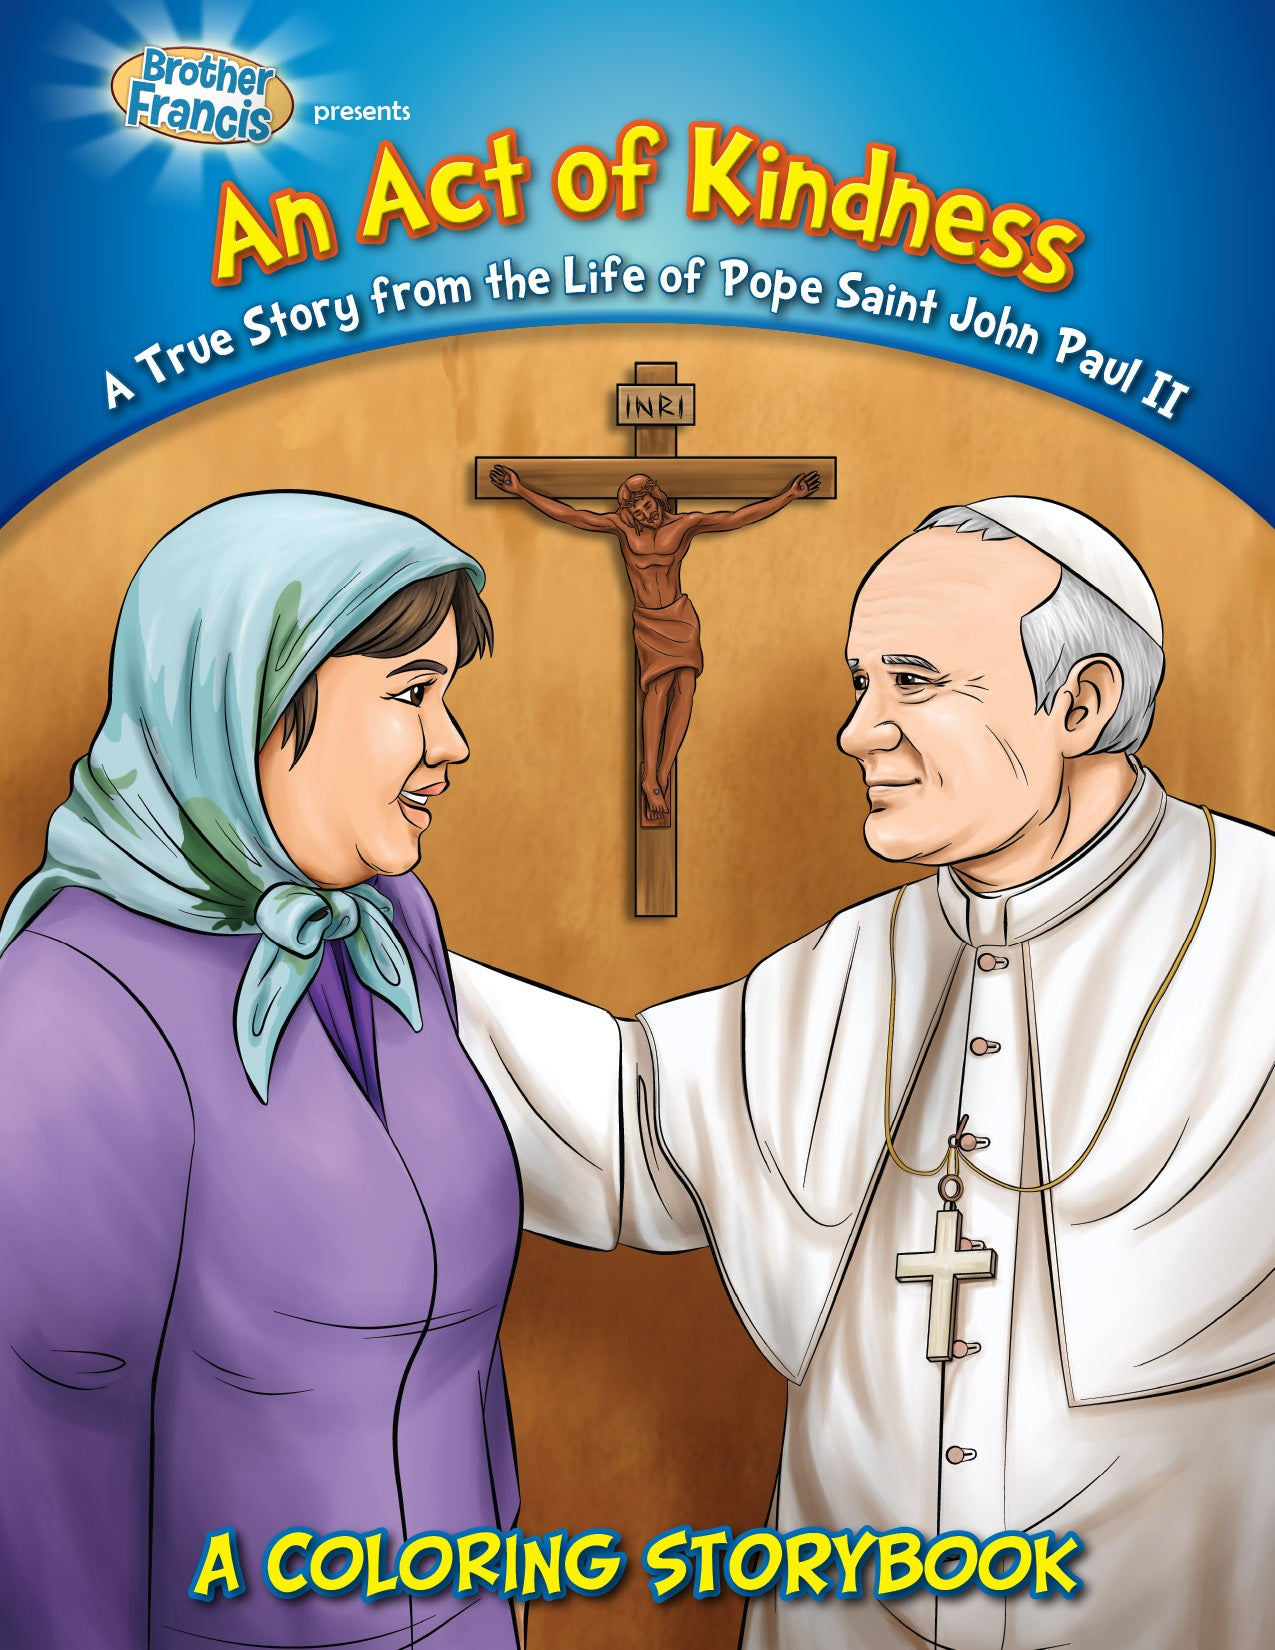 An Act of Kindness - a Coloring Storybook of Pope Saint John Paul II